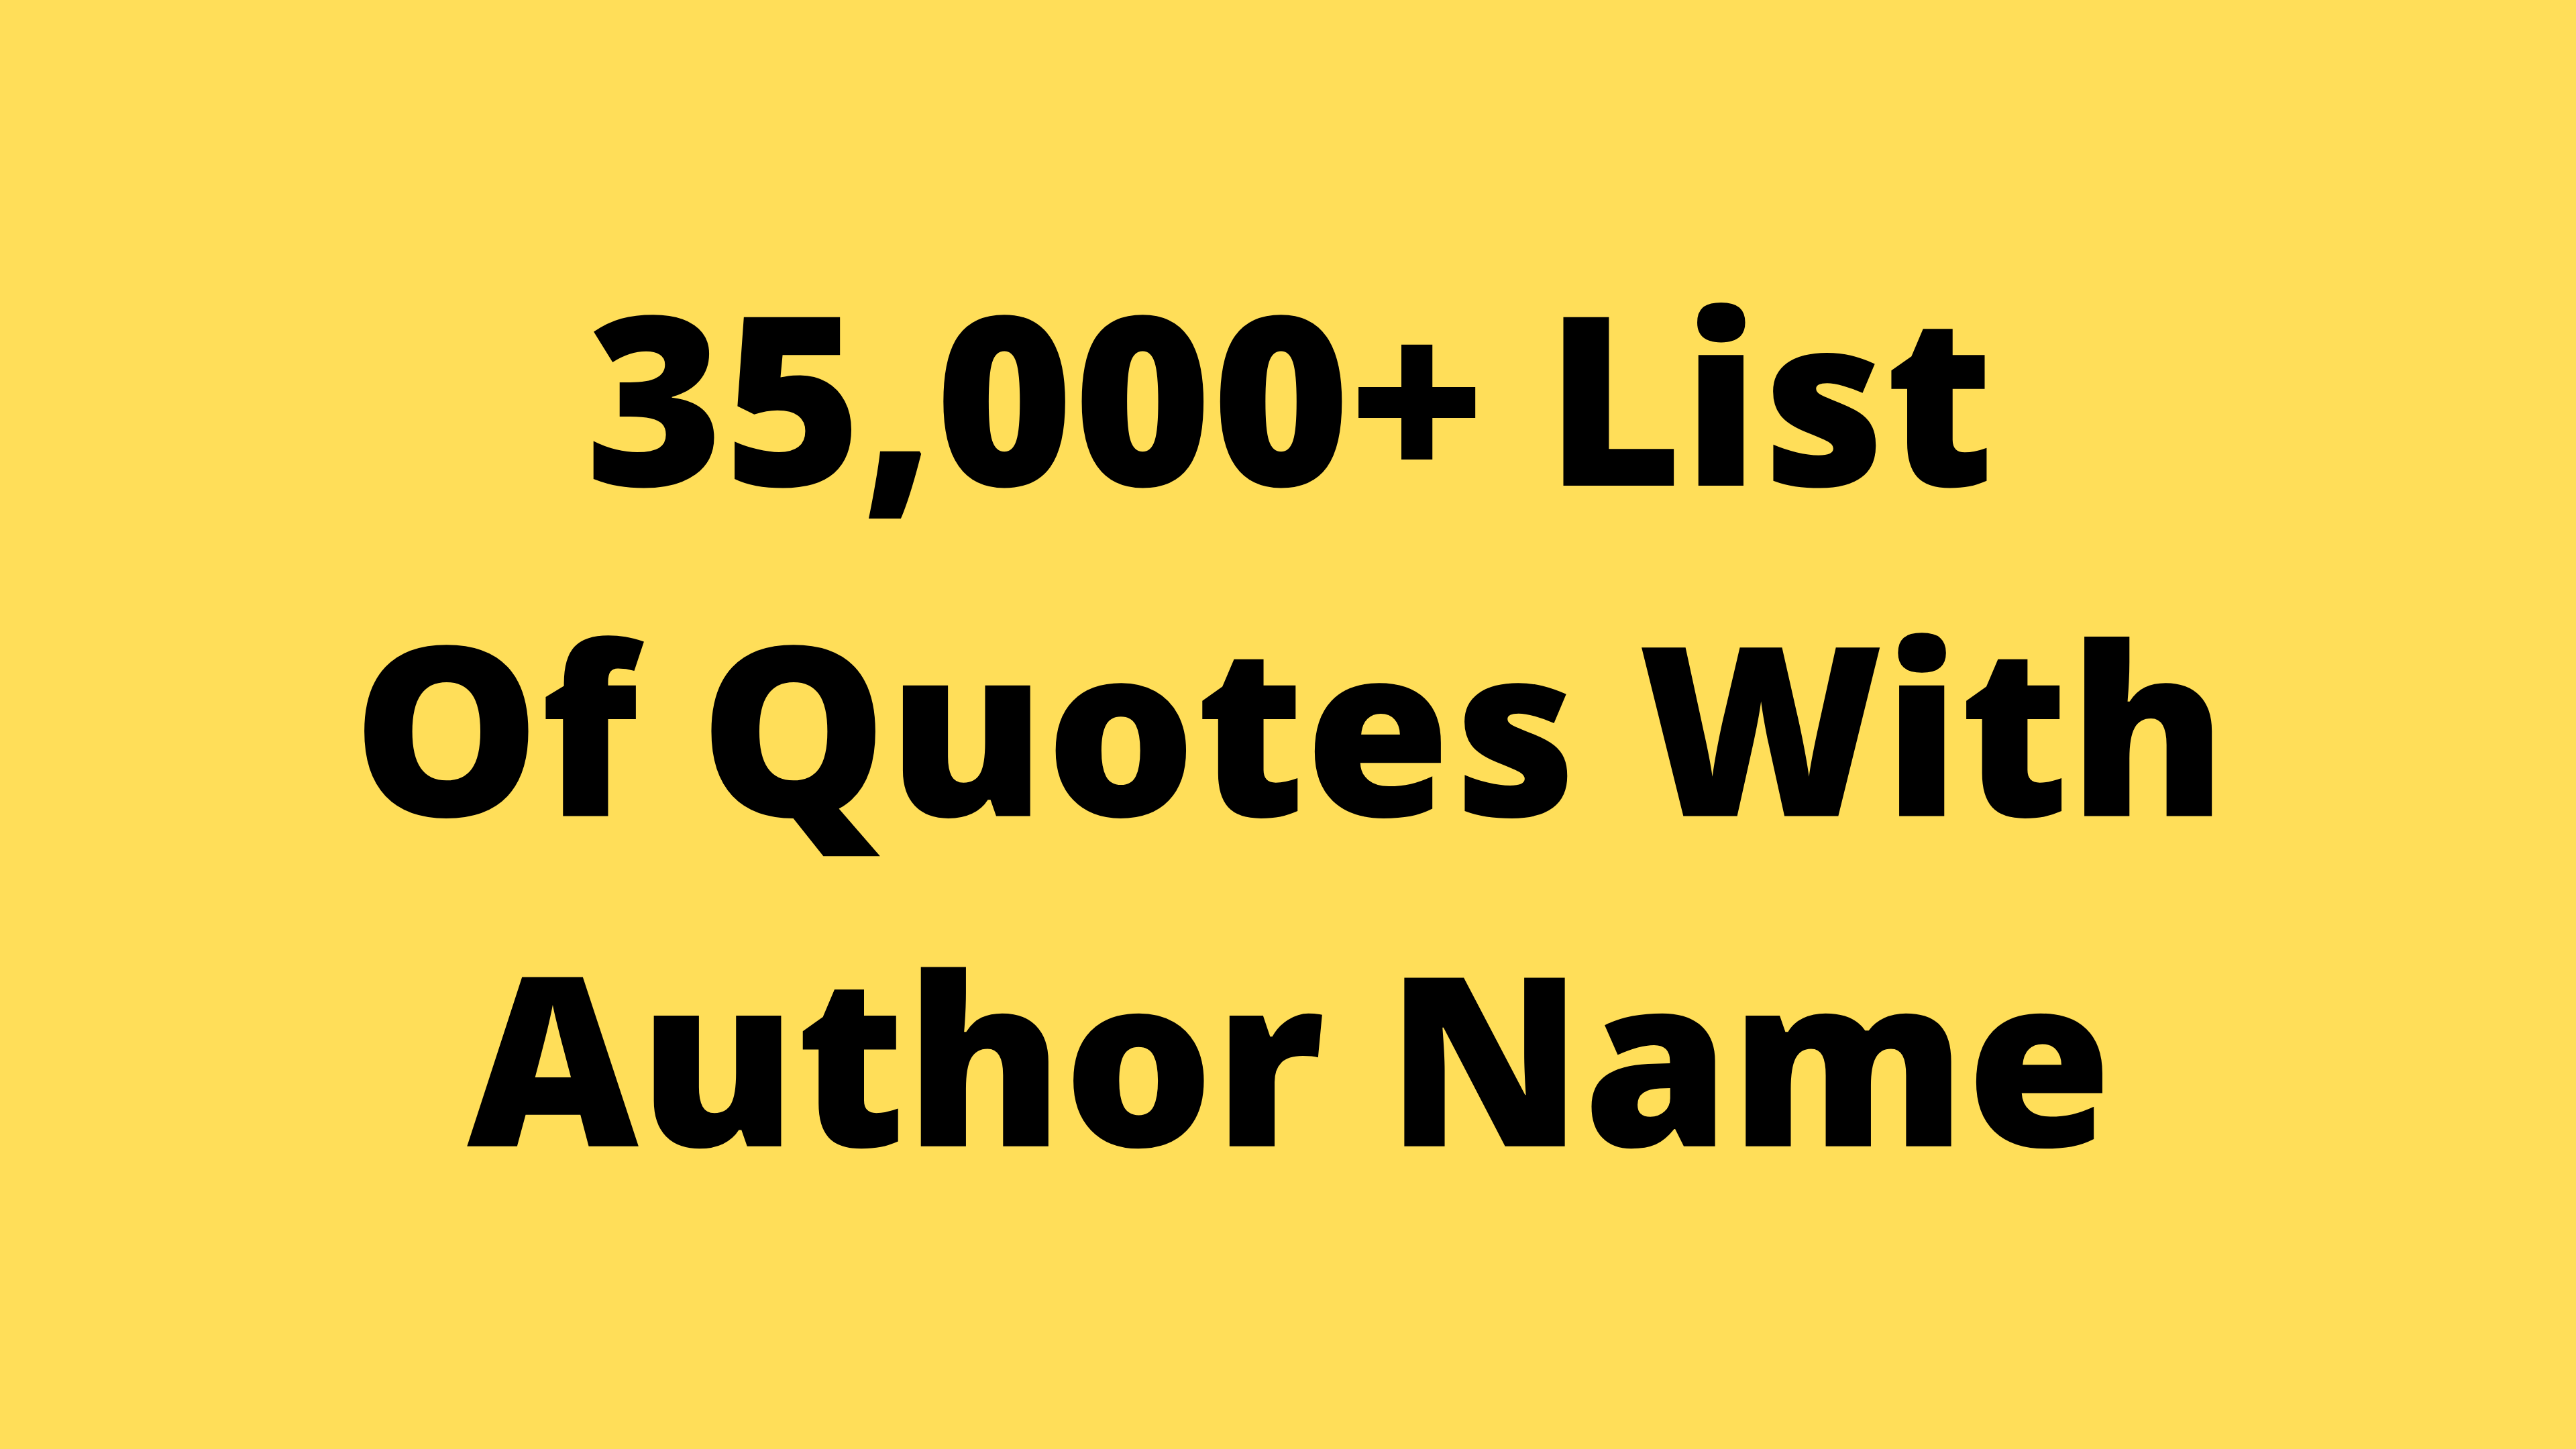 35,000+ List Of Quotes With Author Name For Your Social Post Or Blogging